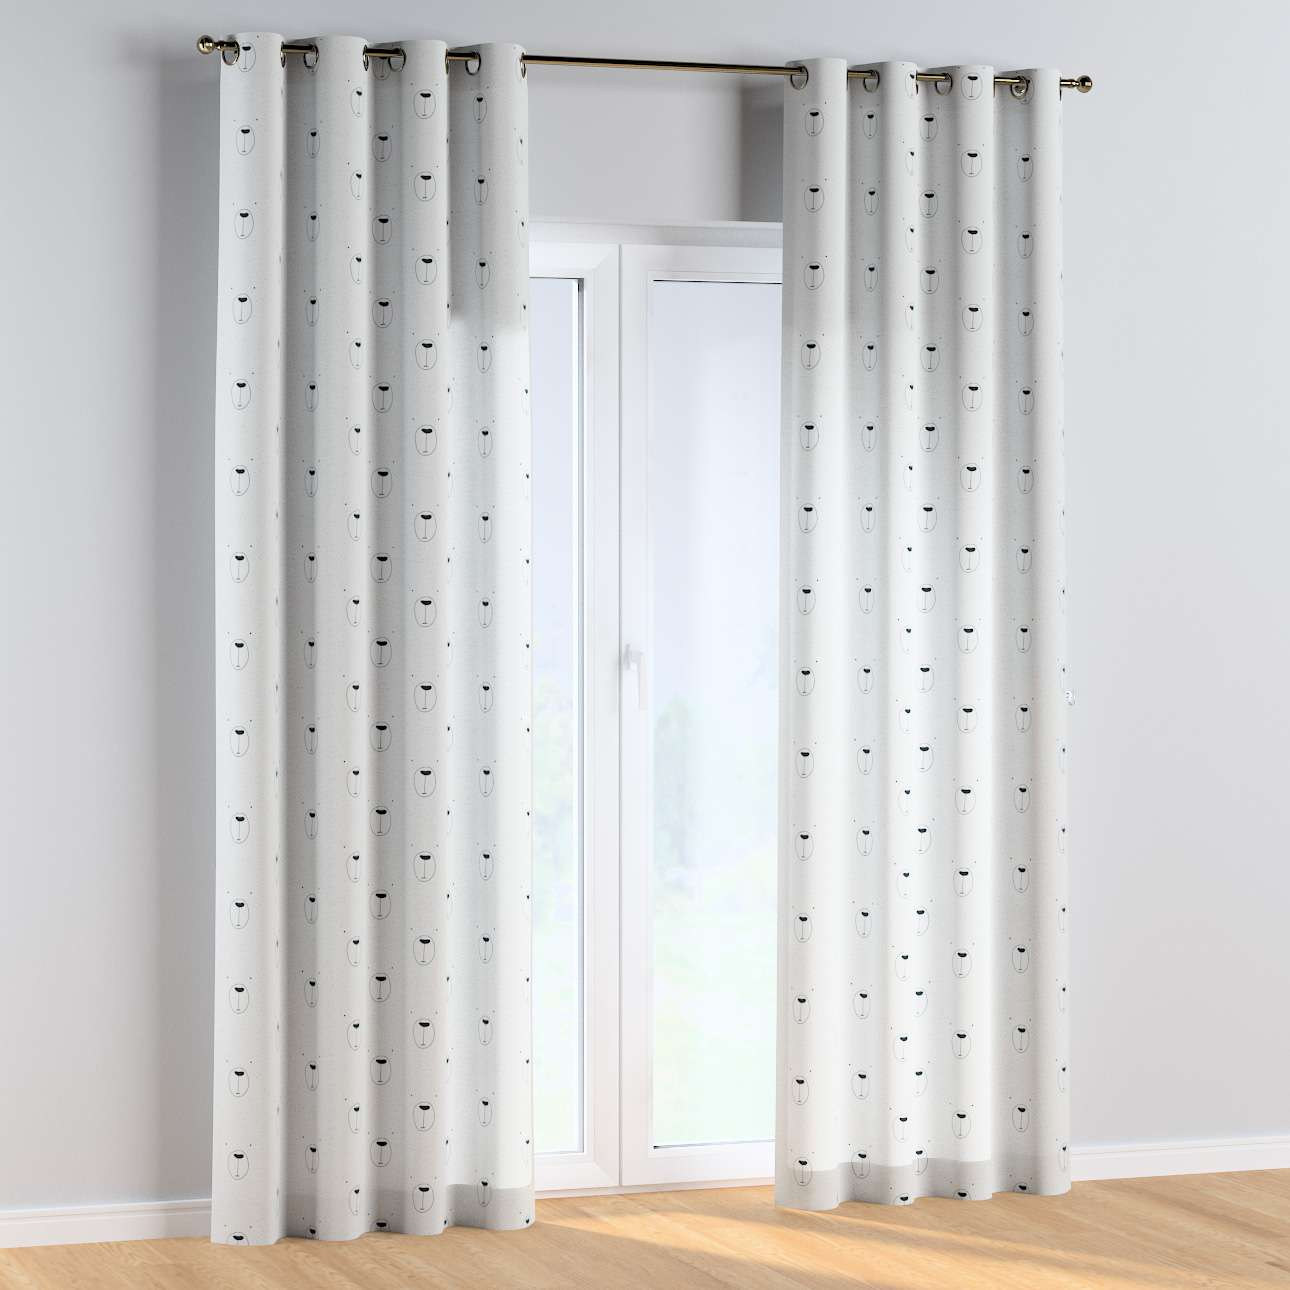 Eyelet curtains in collection Magic Collection, fabric: 500-06